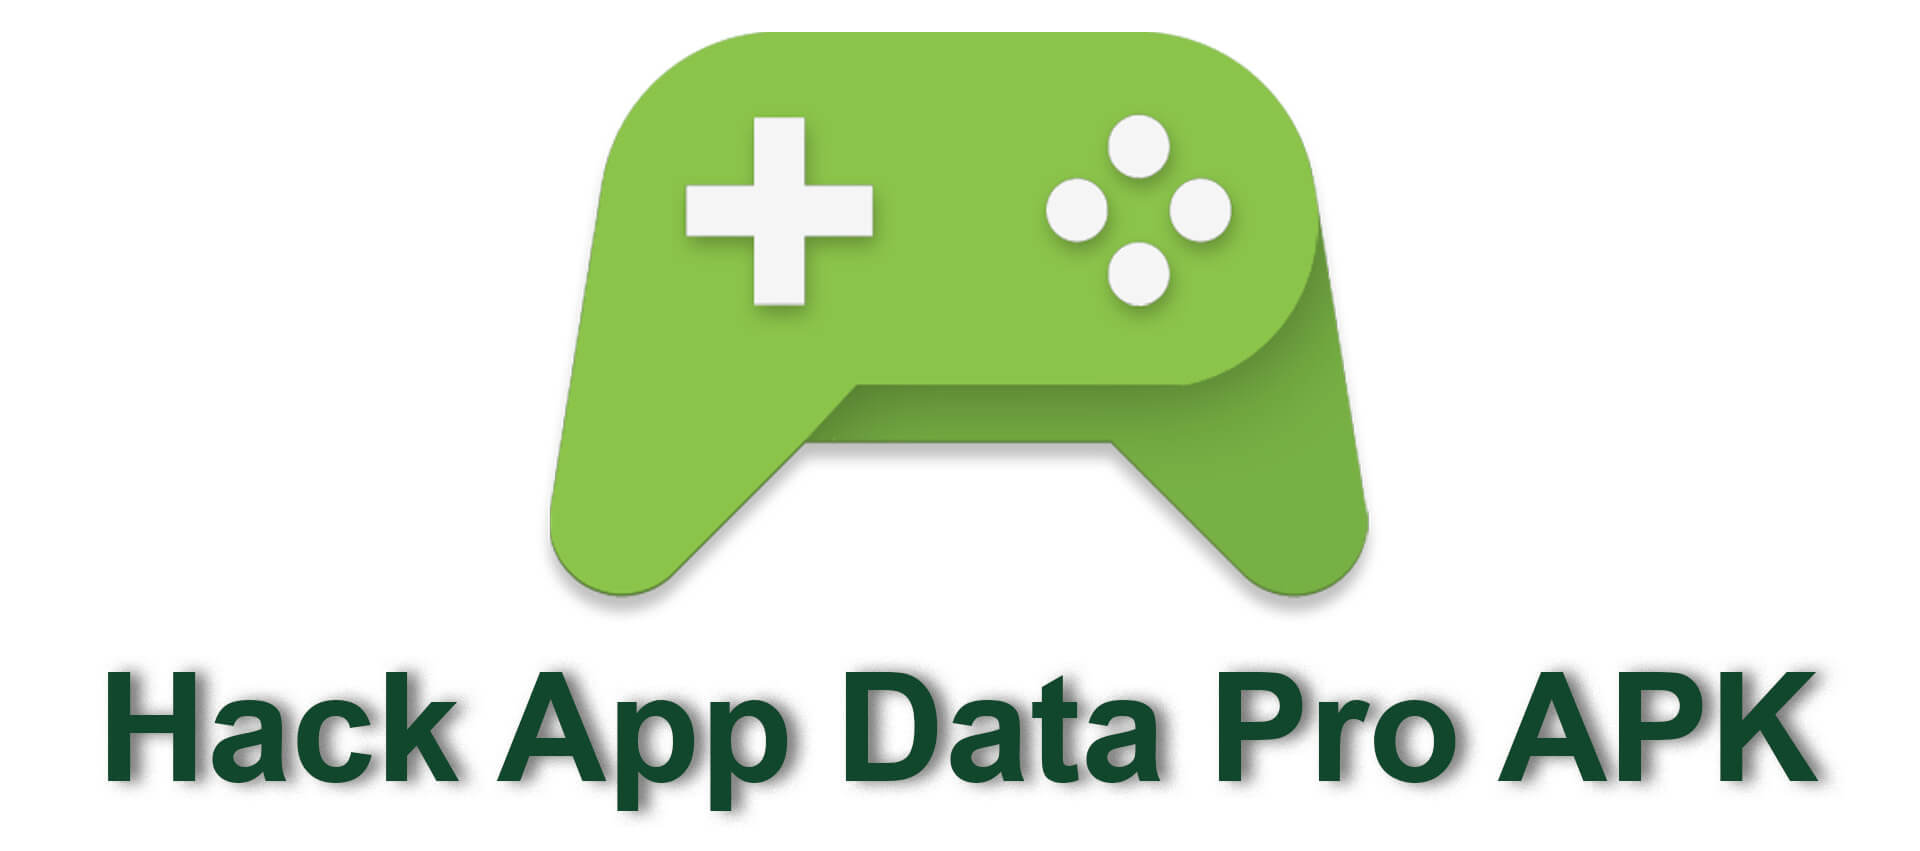 hack app data apk pro free download